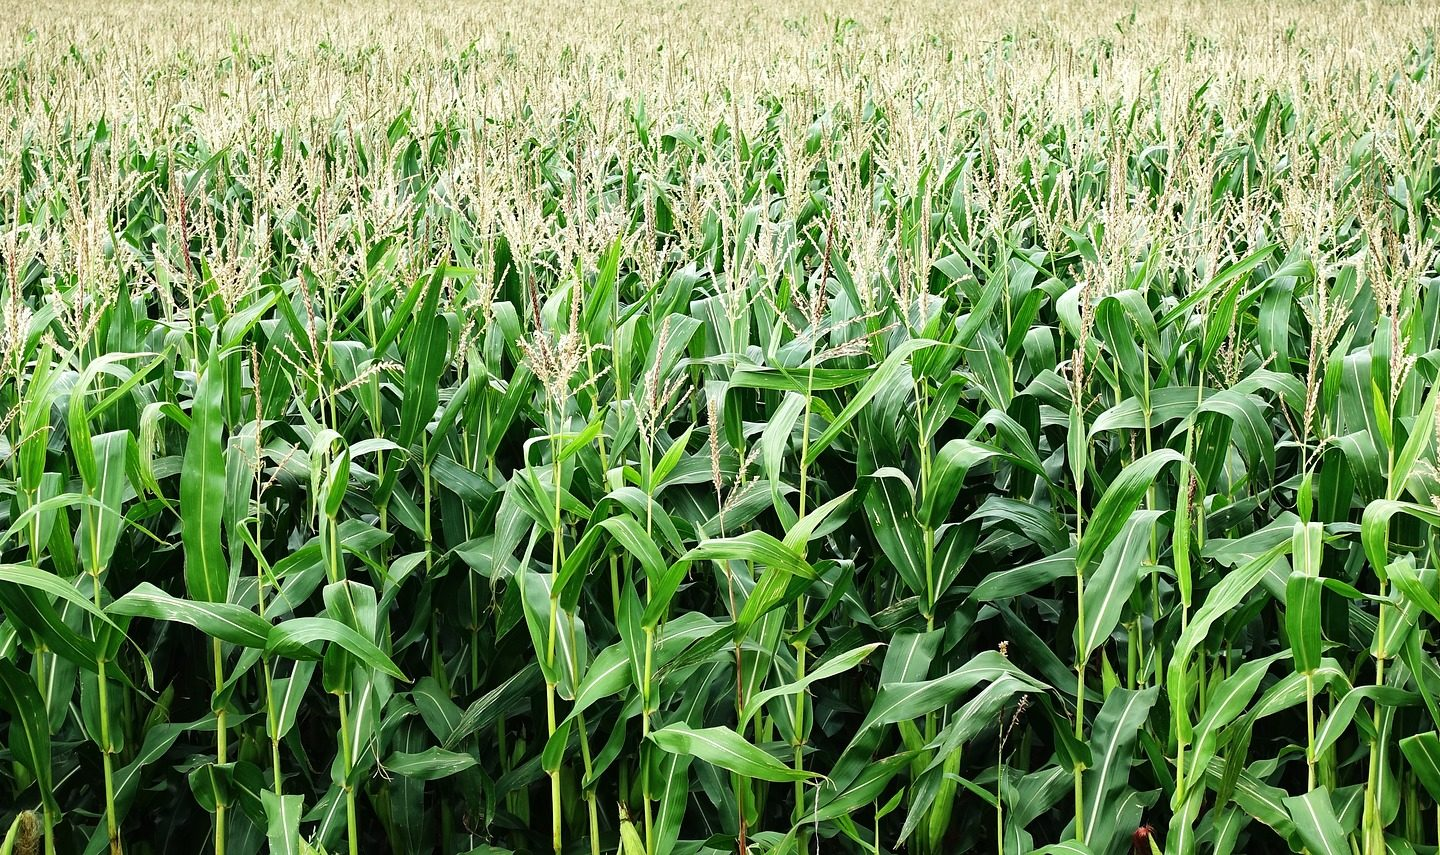 Scientists improve antioxidant content of maize